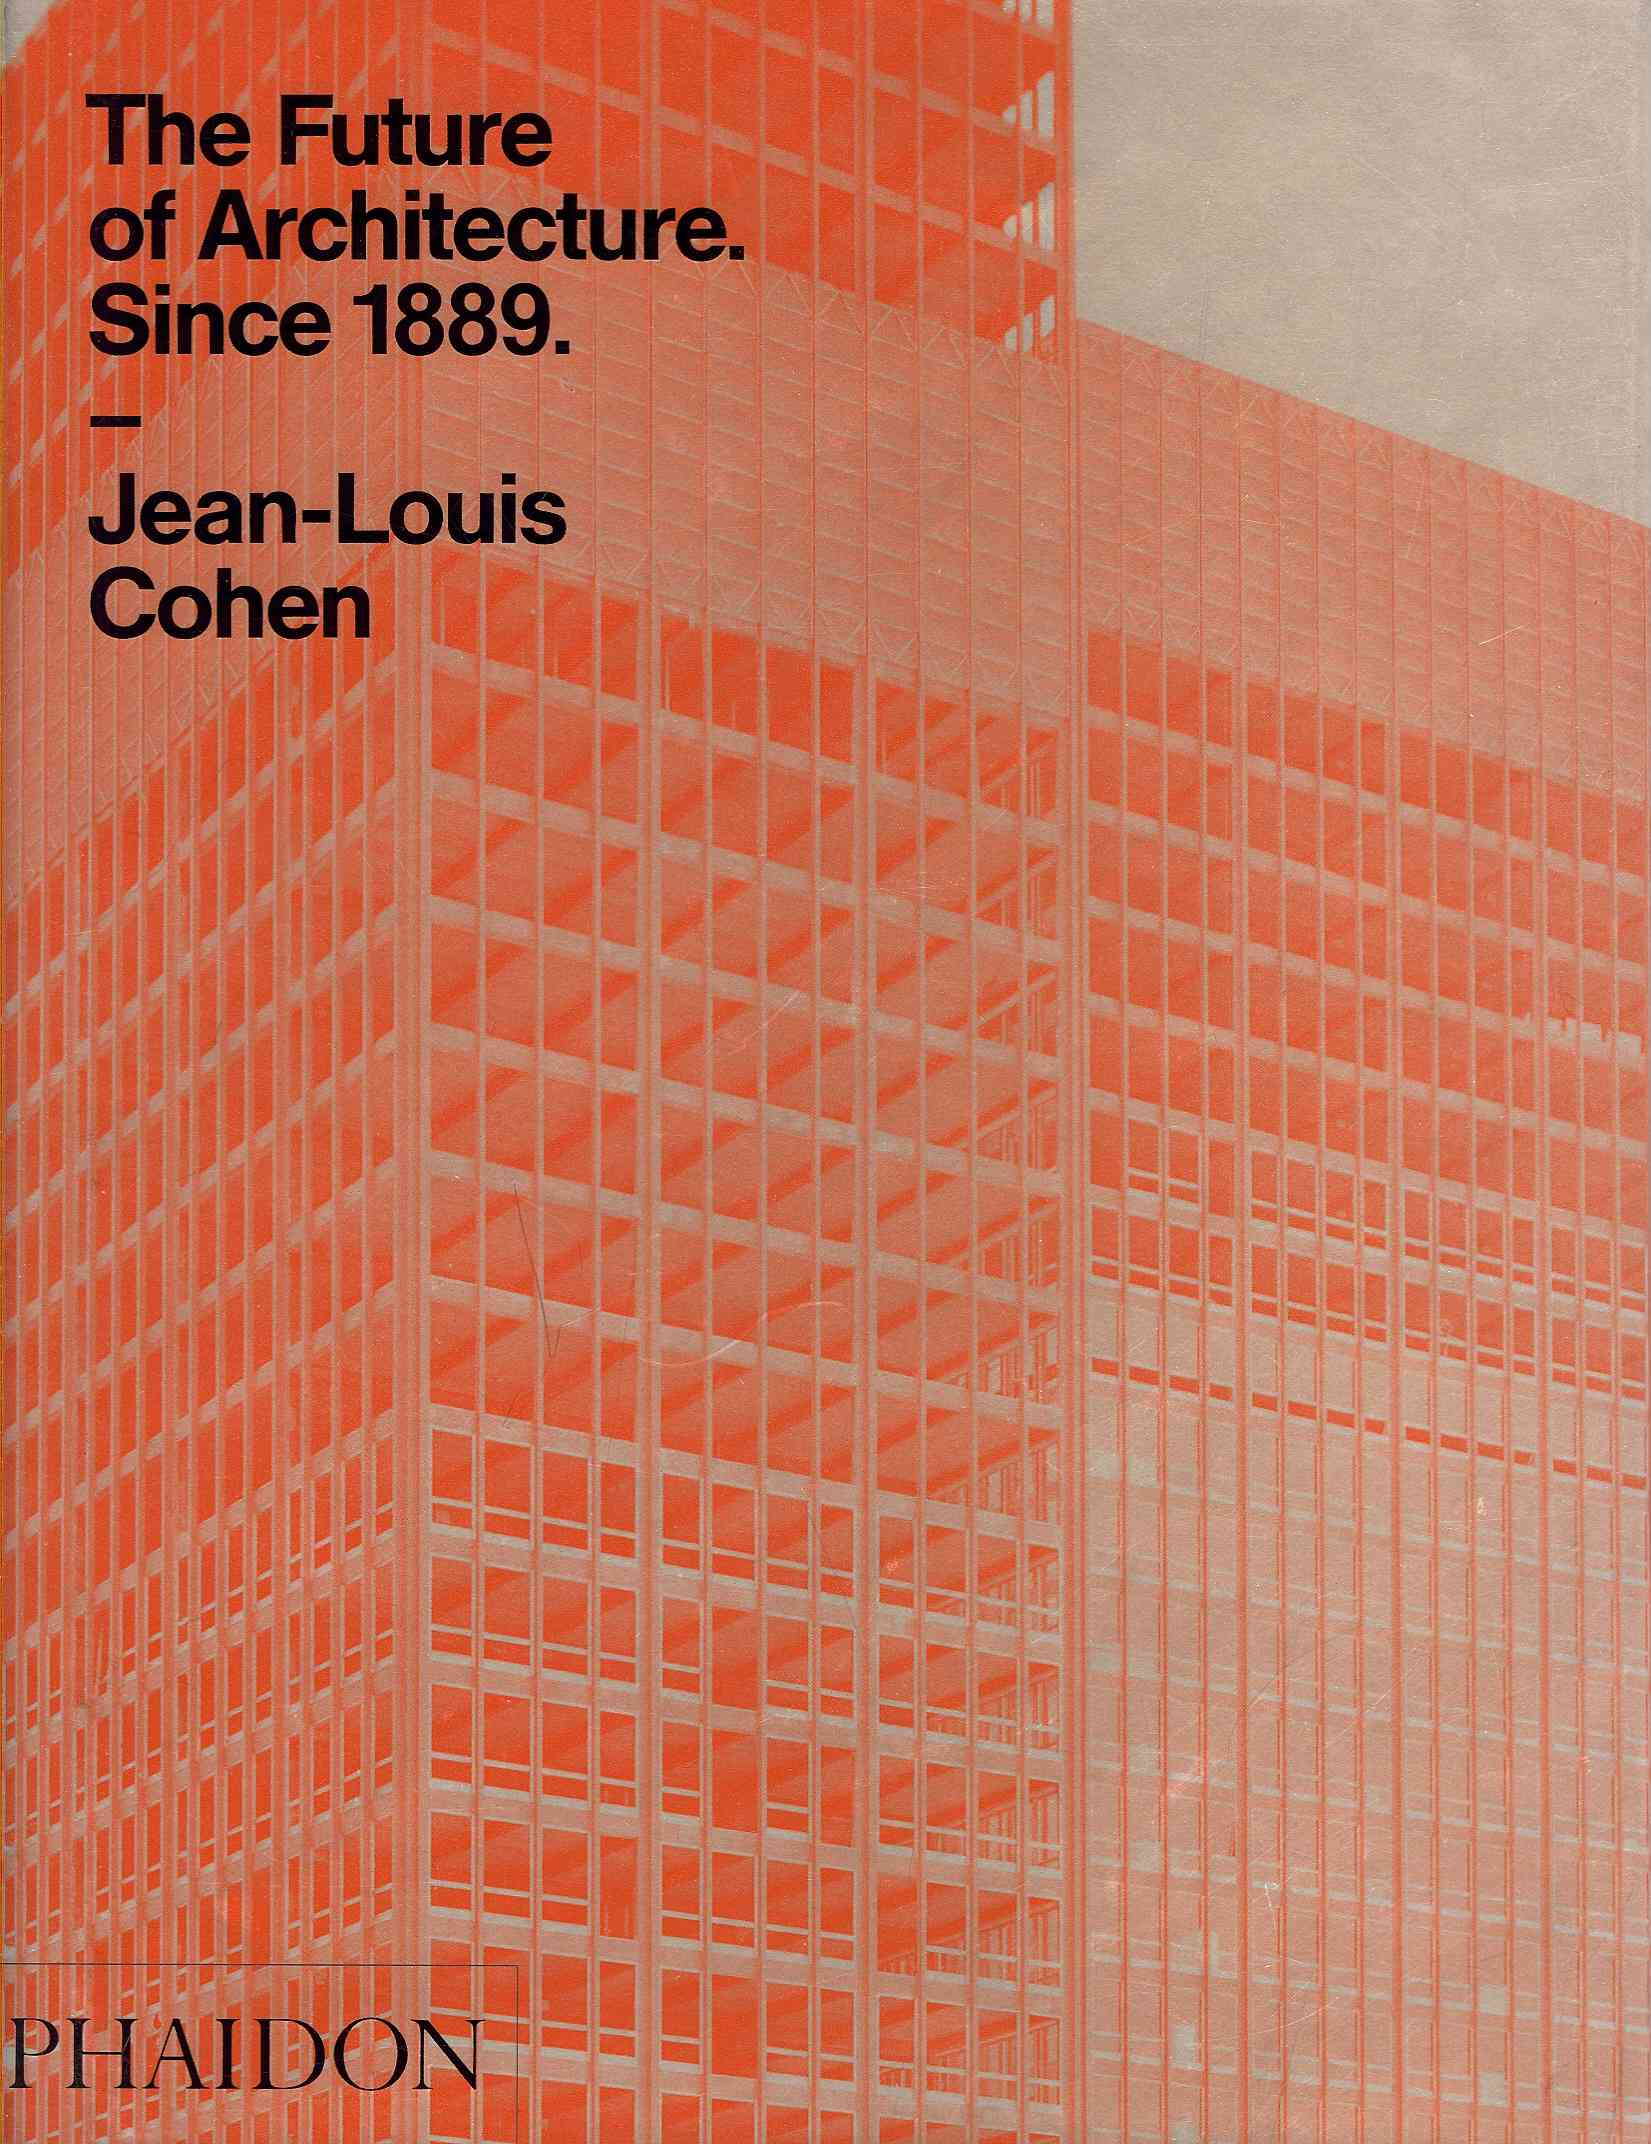 The Future of Architecture Since 1889 (Hardcover)